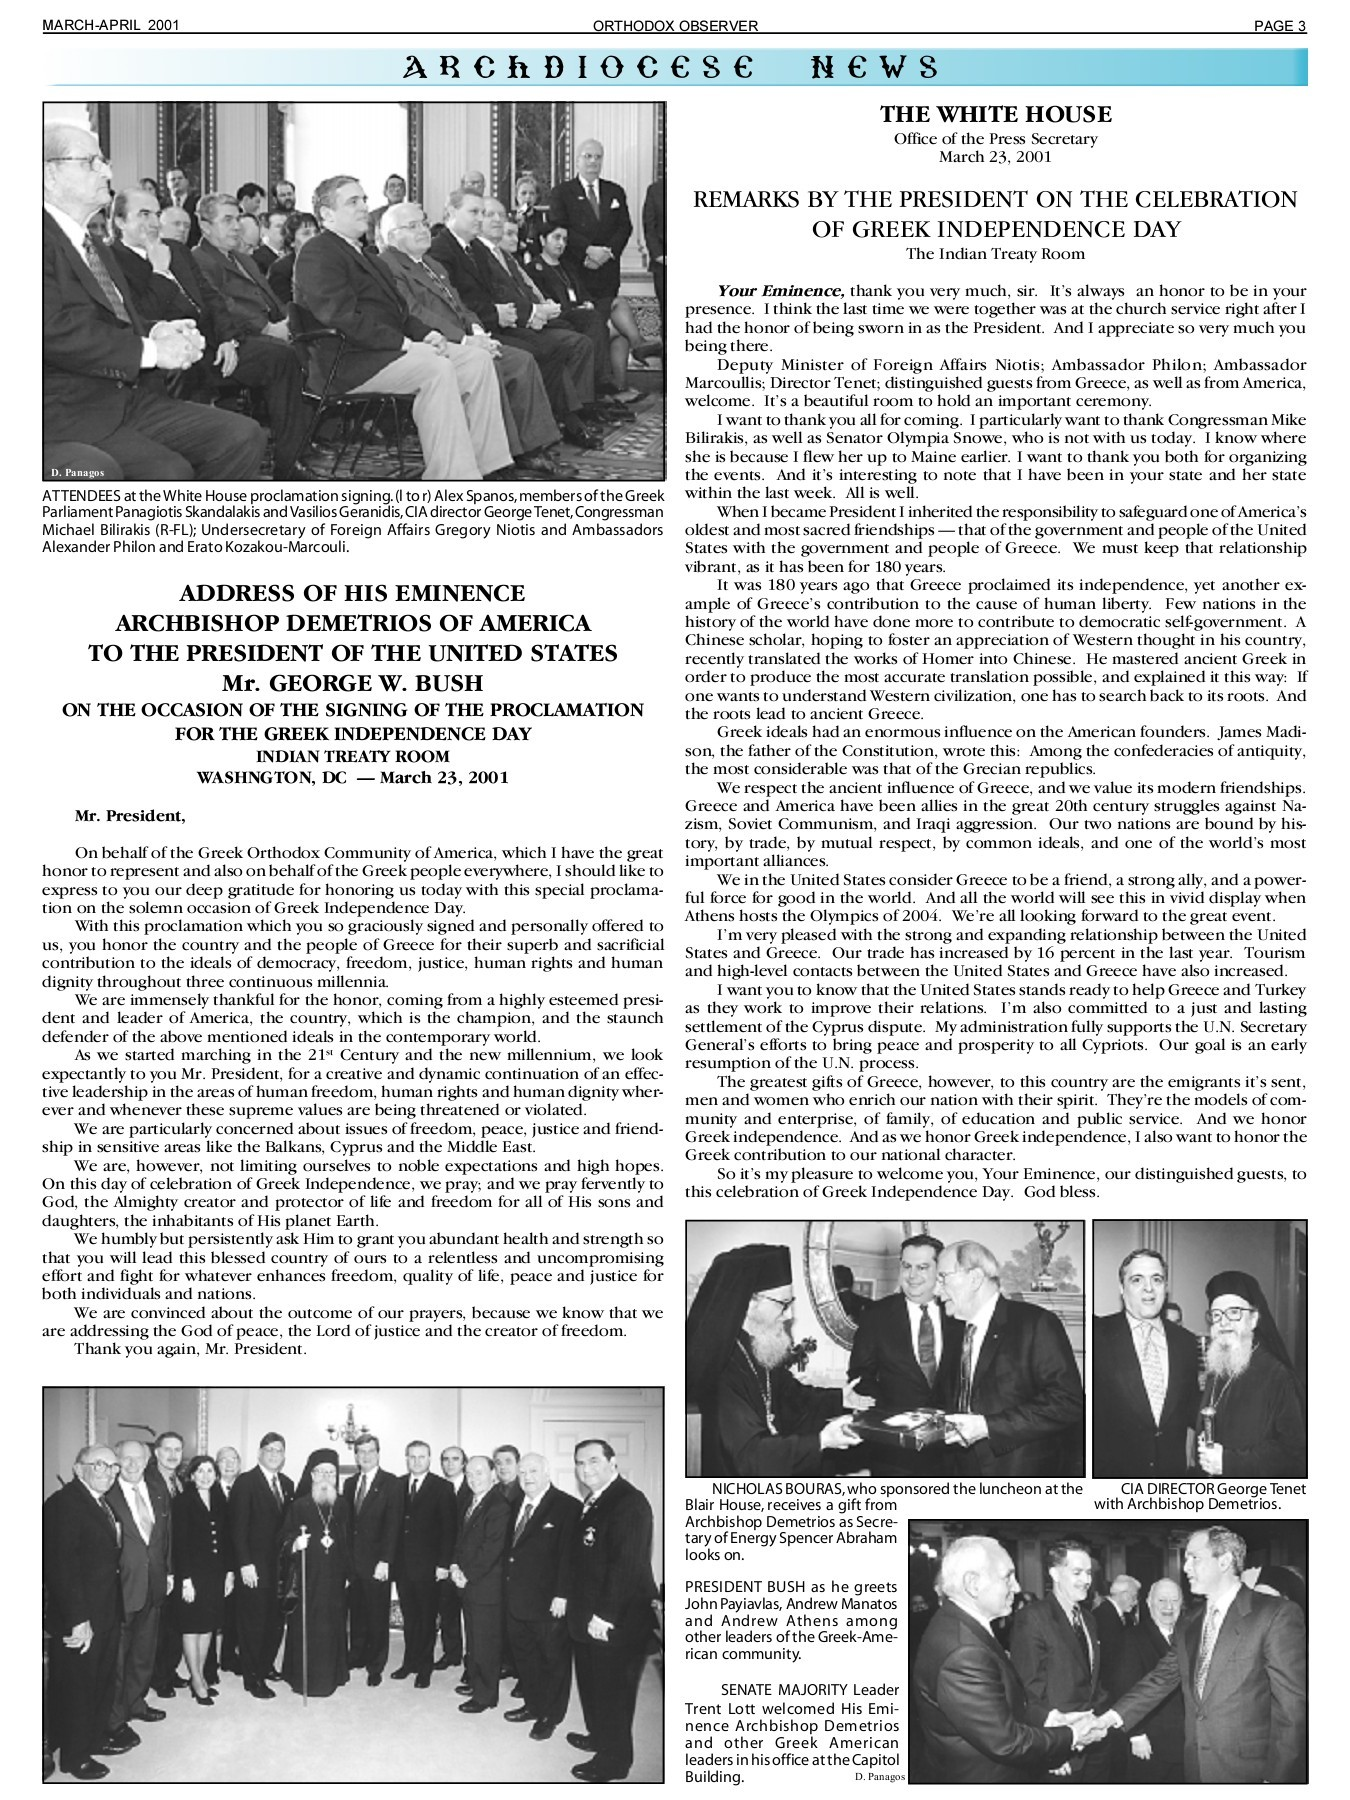 March/April 2001 Orthodox Observer - Orthodox Observer Archive